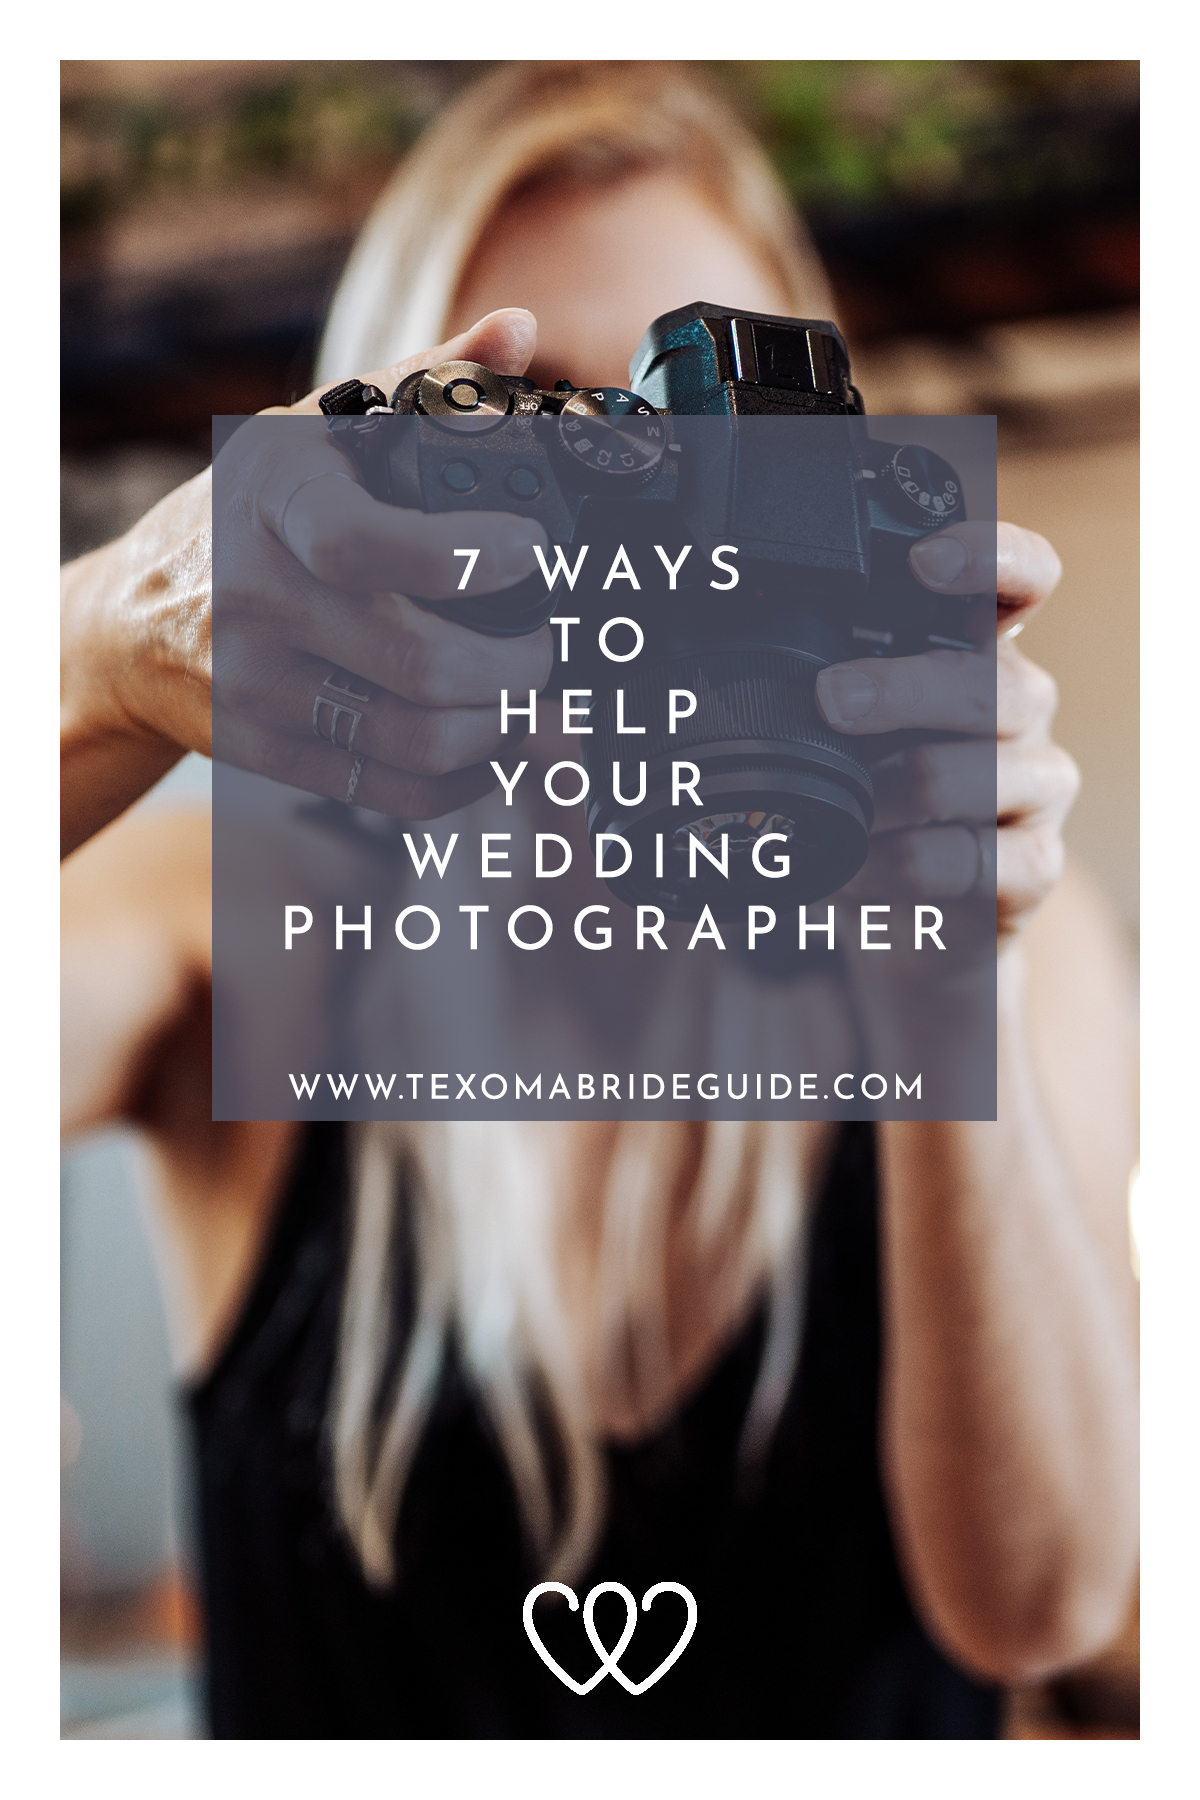 7 Ways To Help Your Wedding Photographer | Texoma Bride Guide Blog